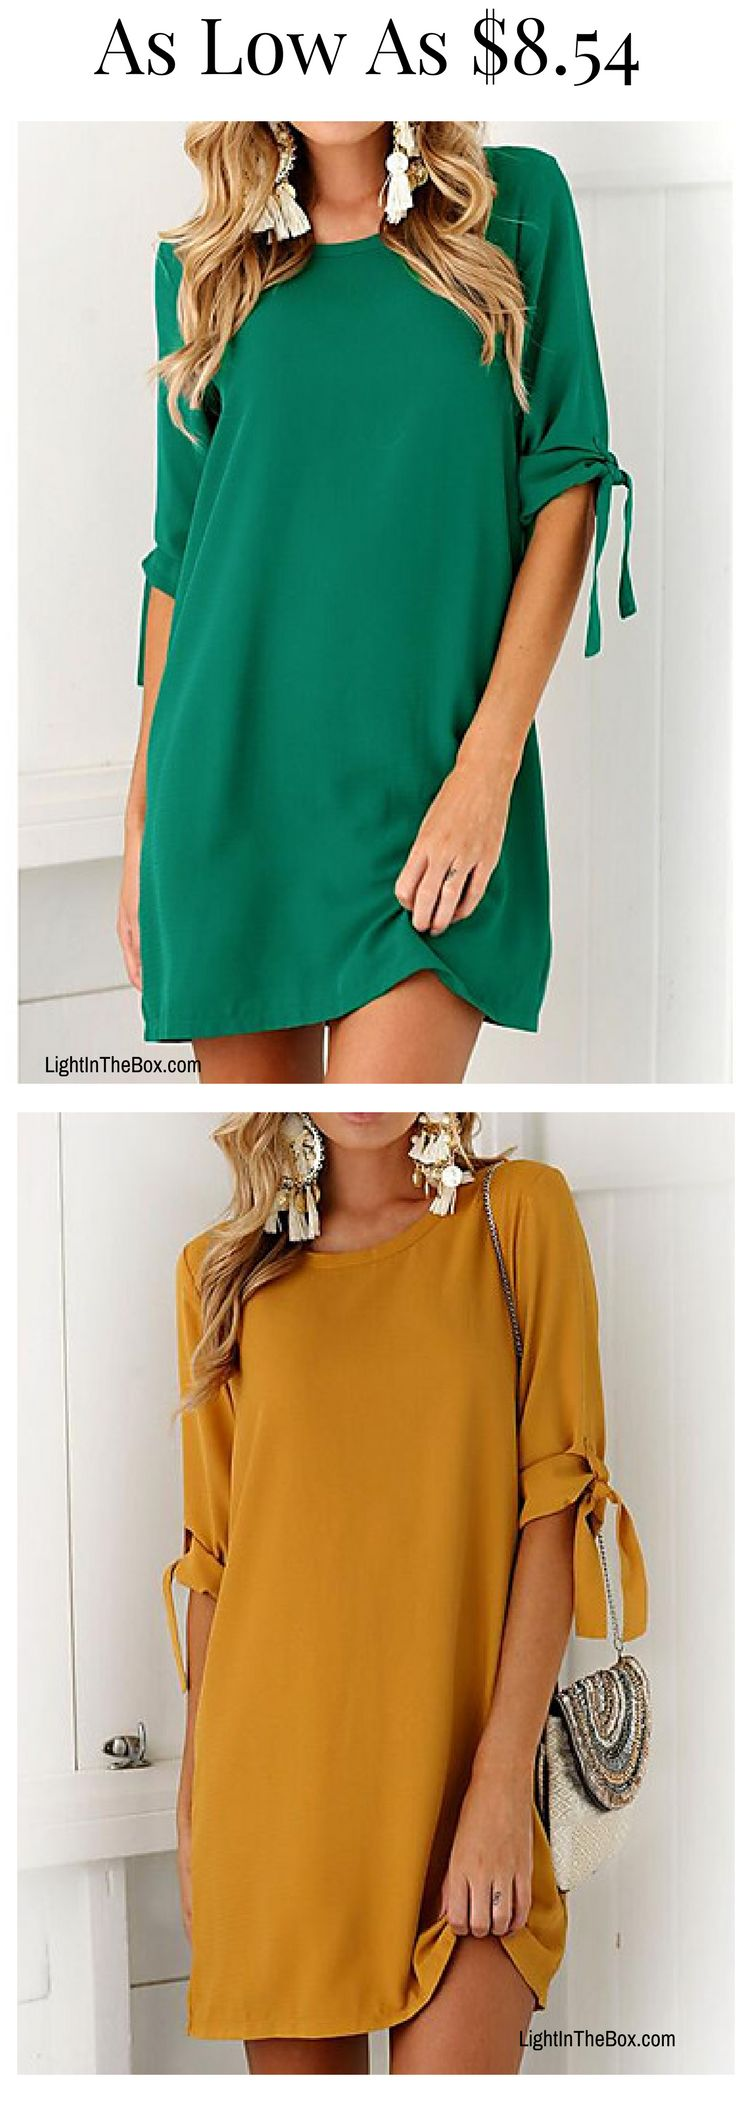 Elegant above knee casual women dress. Find it in green/ mustard yellow/ khaki/ black / purple at just $8.54. Click to shop. http://feedproxy.google.com/fashionshoes1